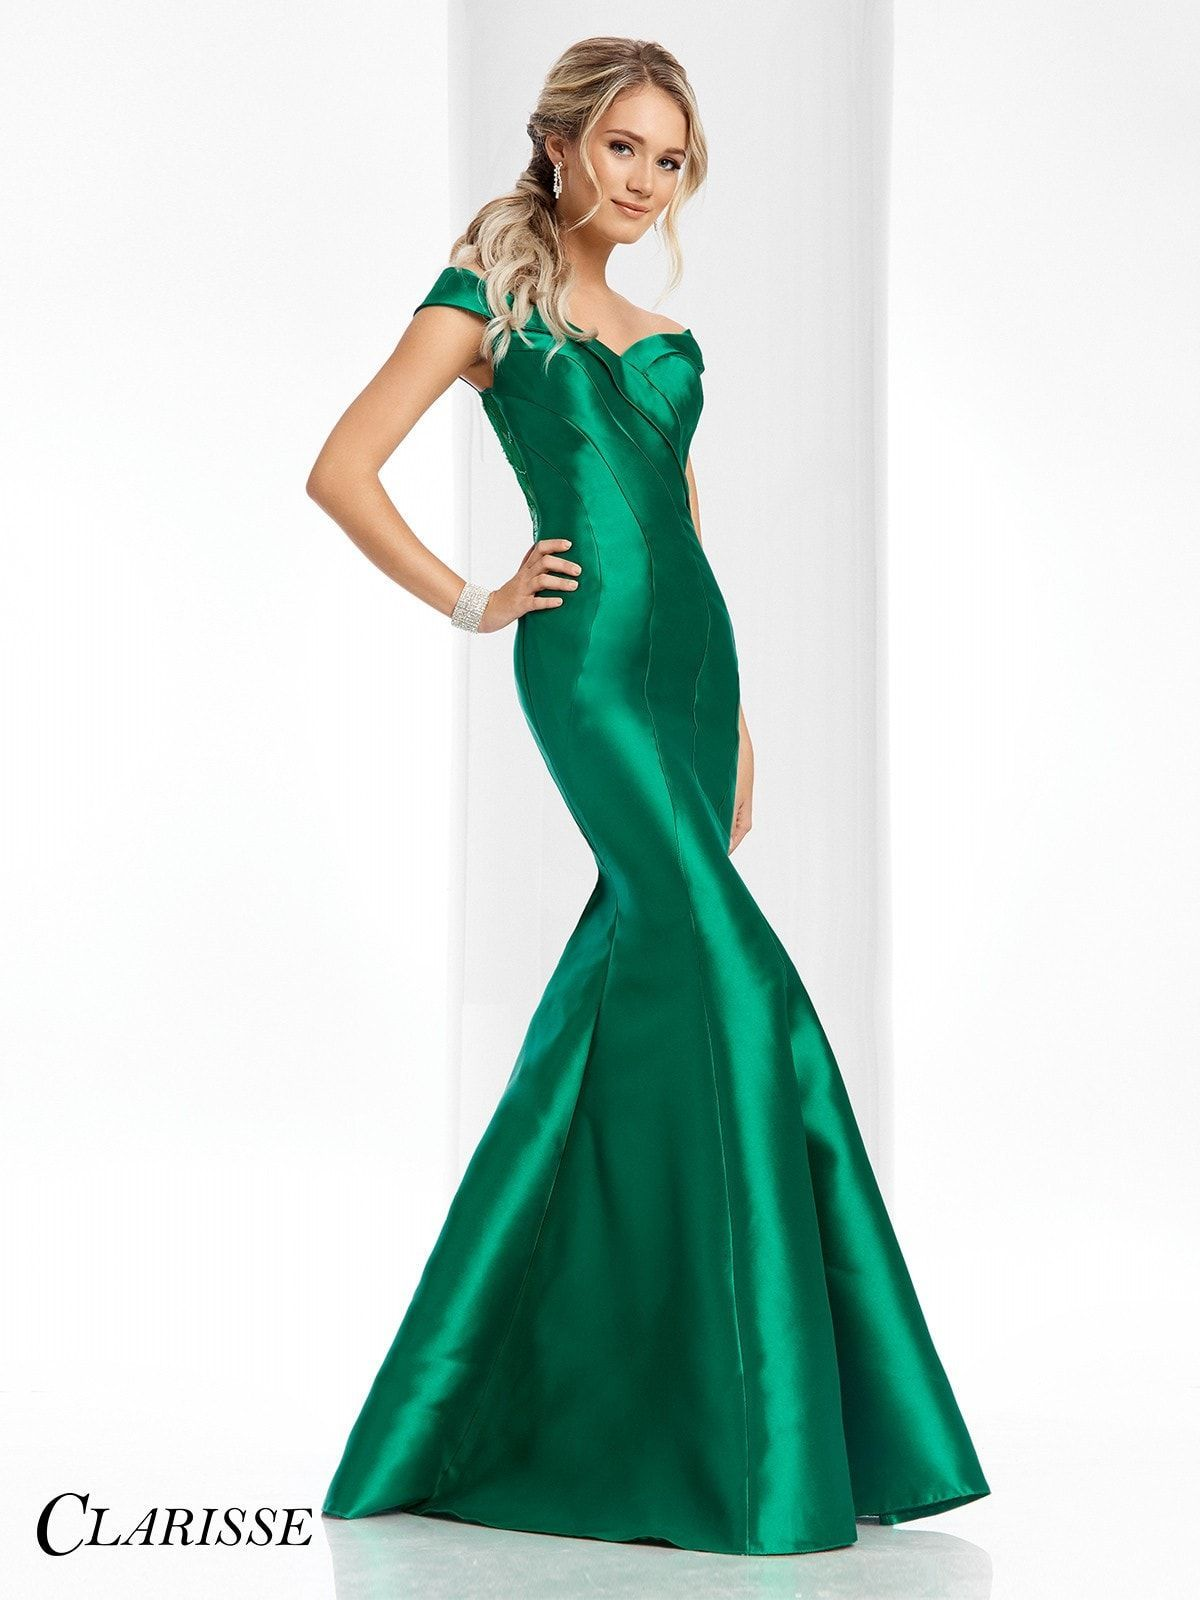 Clarisse Couture 4820 Forest Green Mermaid Prom Dress Dresses Prom Dresses Green Mermaid Prom Dress [ 1600 x 1200 Pixel ]